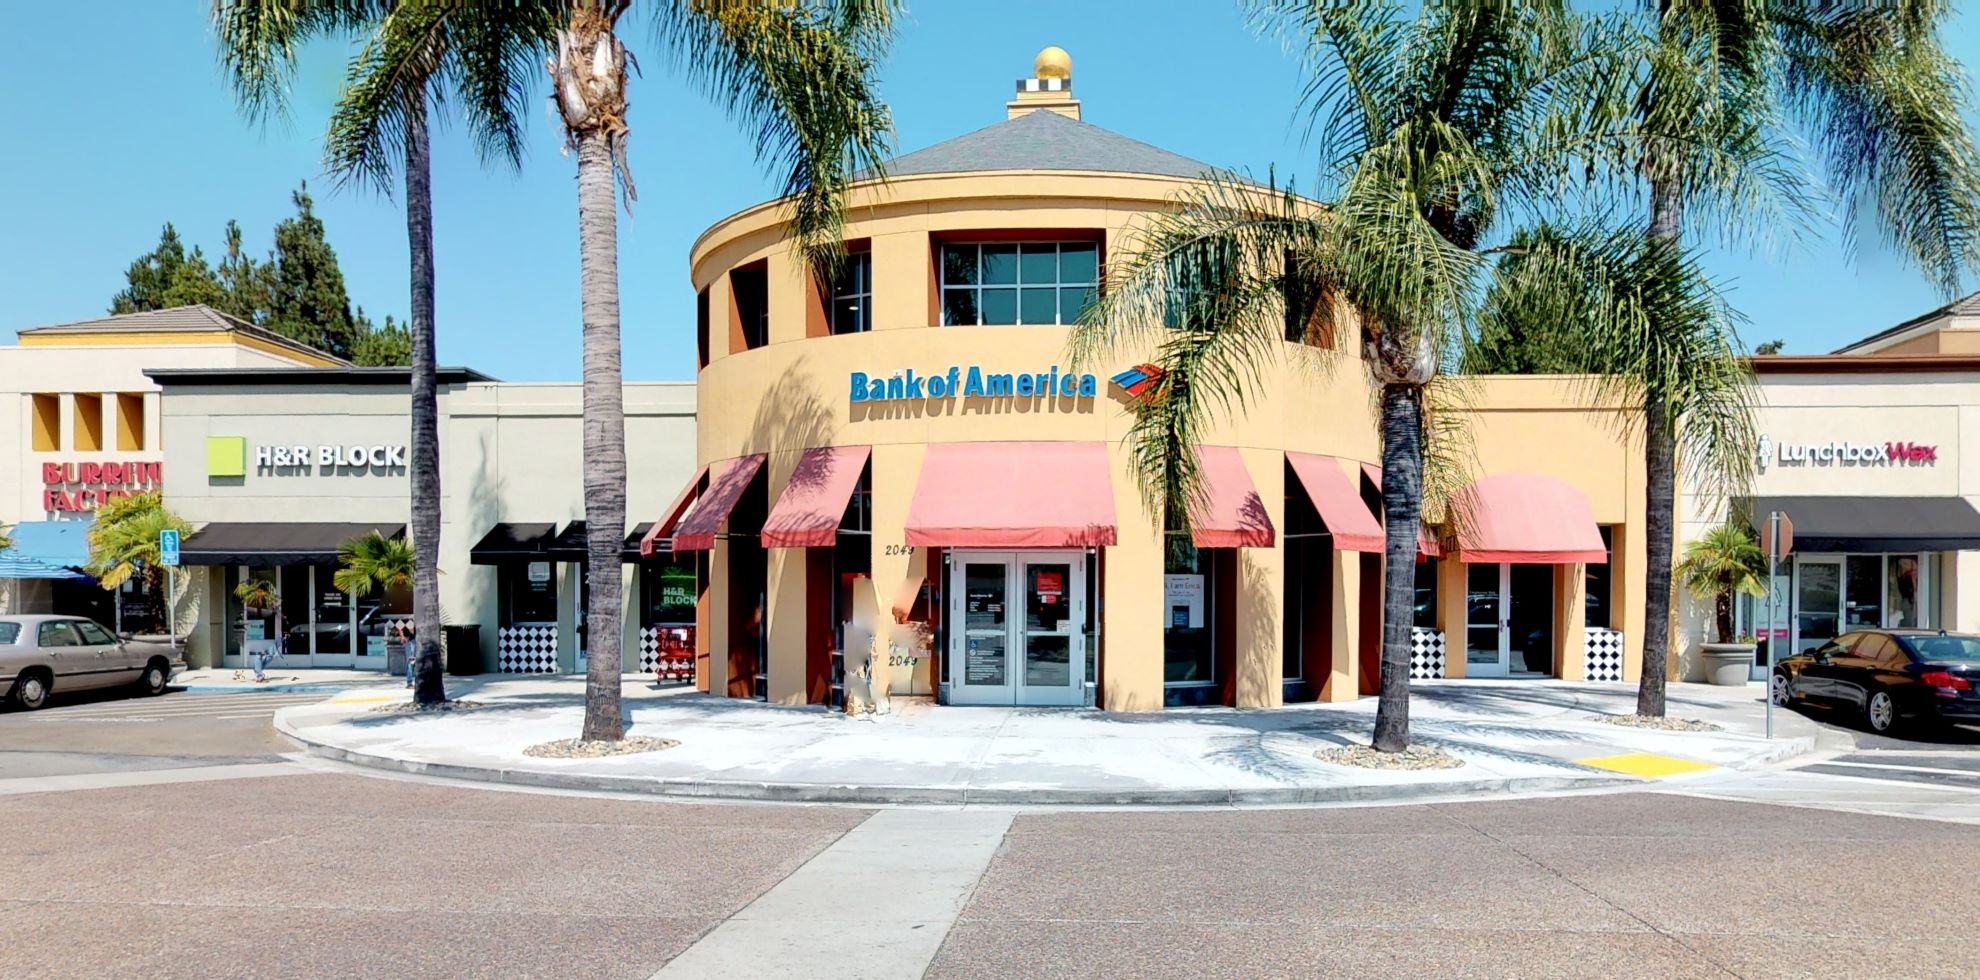 Bank of America financial center with walk-up ATM | 2049 Camden Ave, San Jose, CA 95124